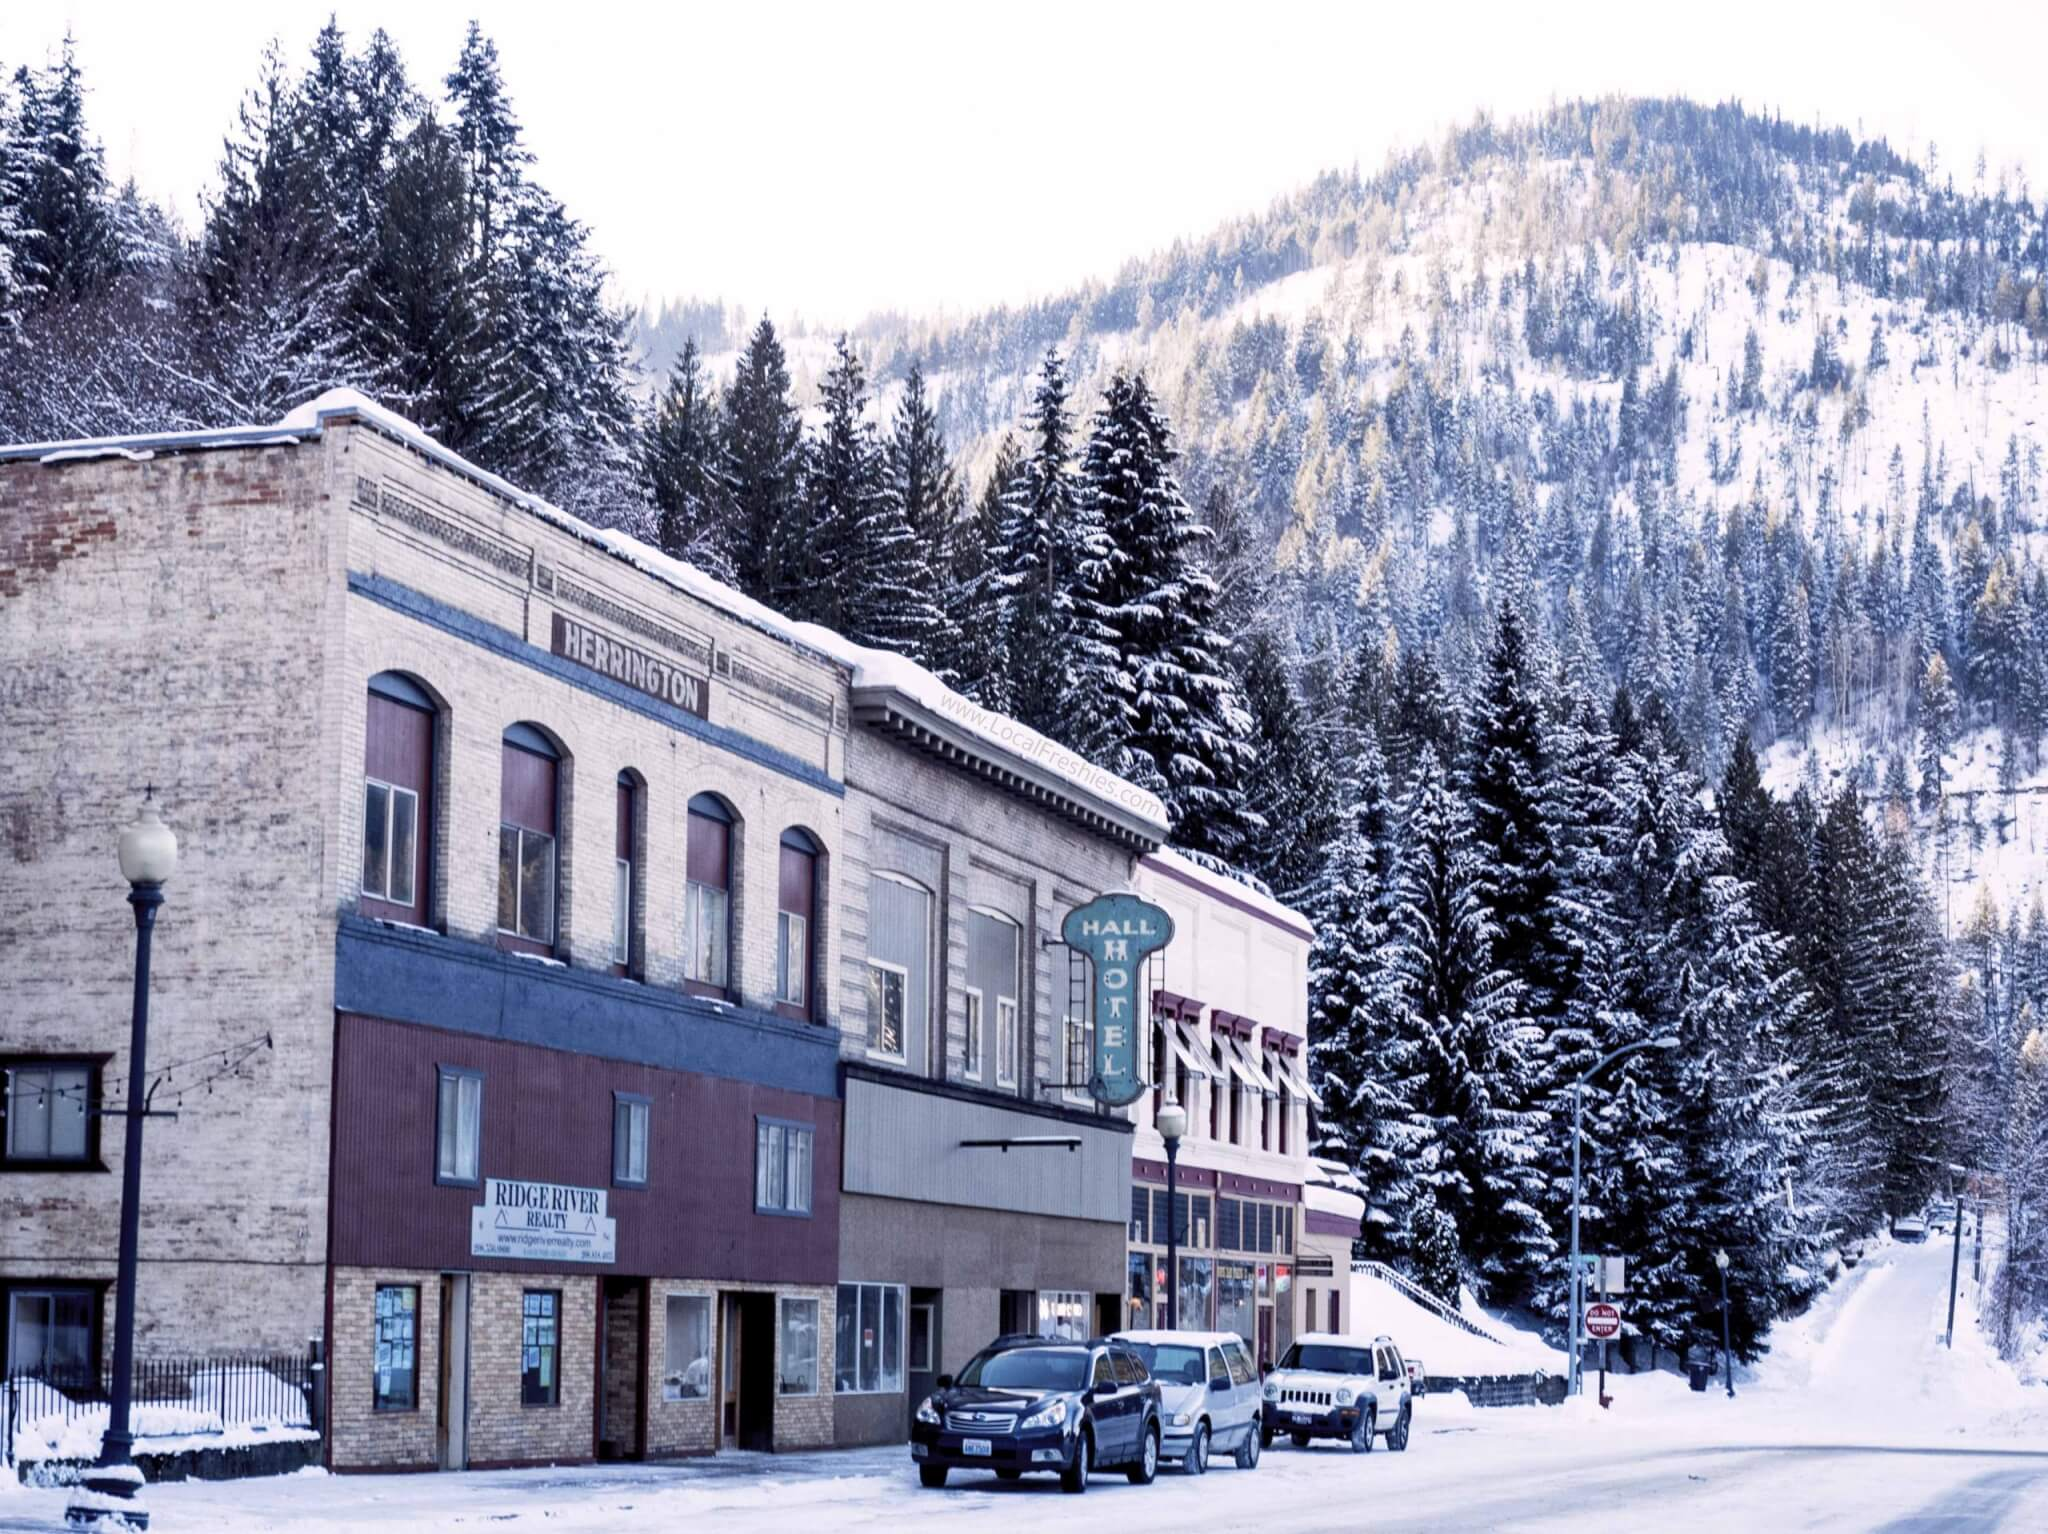 Main Street in Wallace Idaho in winter